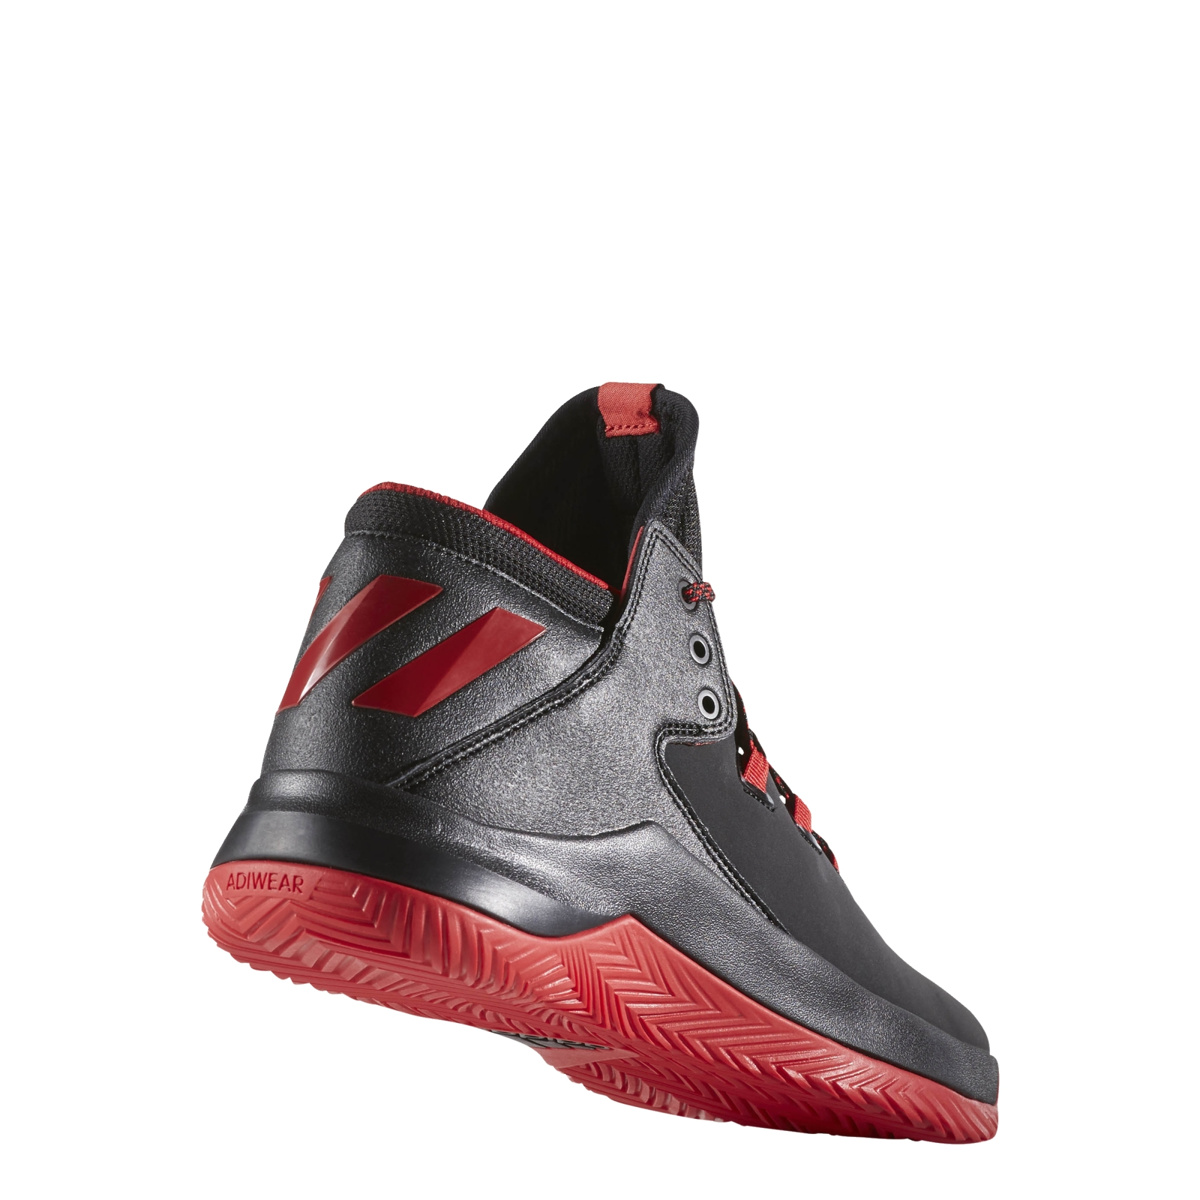 new products c8247 a0167 ... discount code for adidas d rose menace 2.0 basketball shoes bb8201 .  eee93 c0823